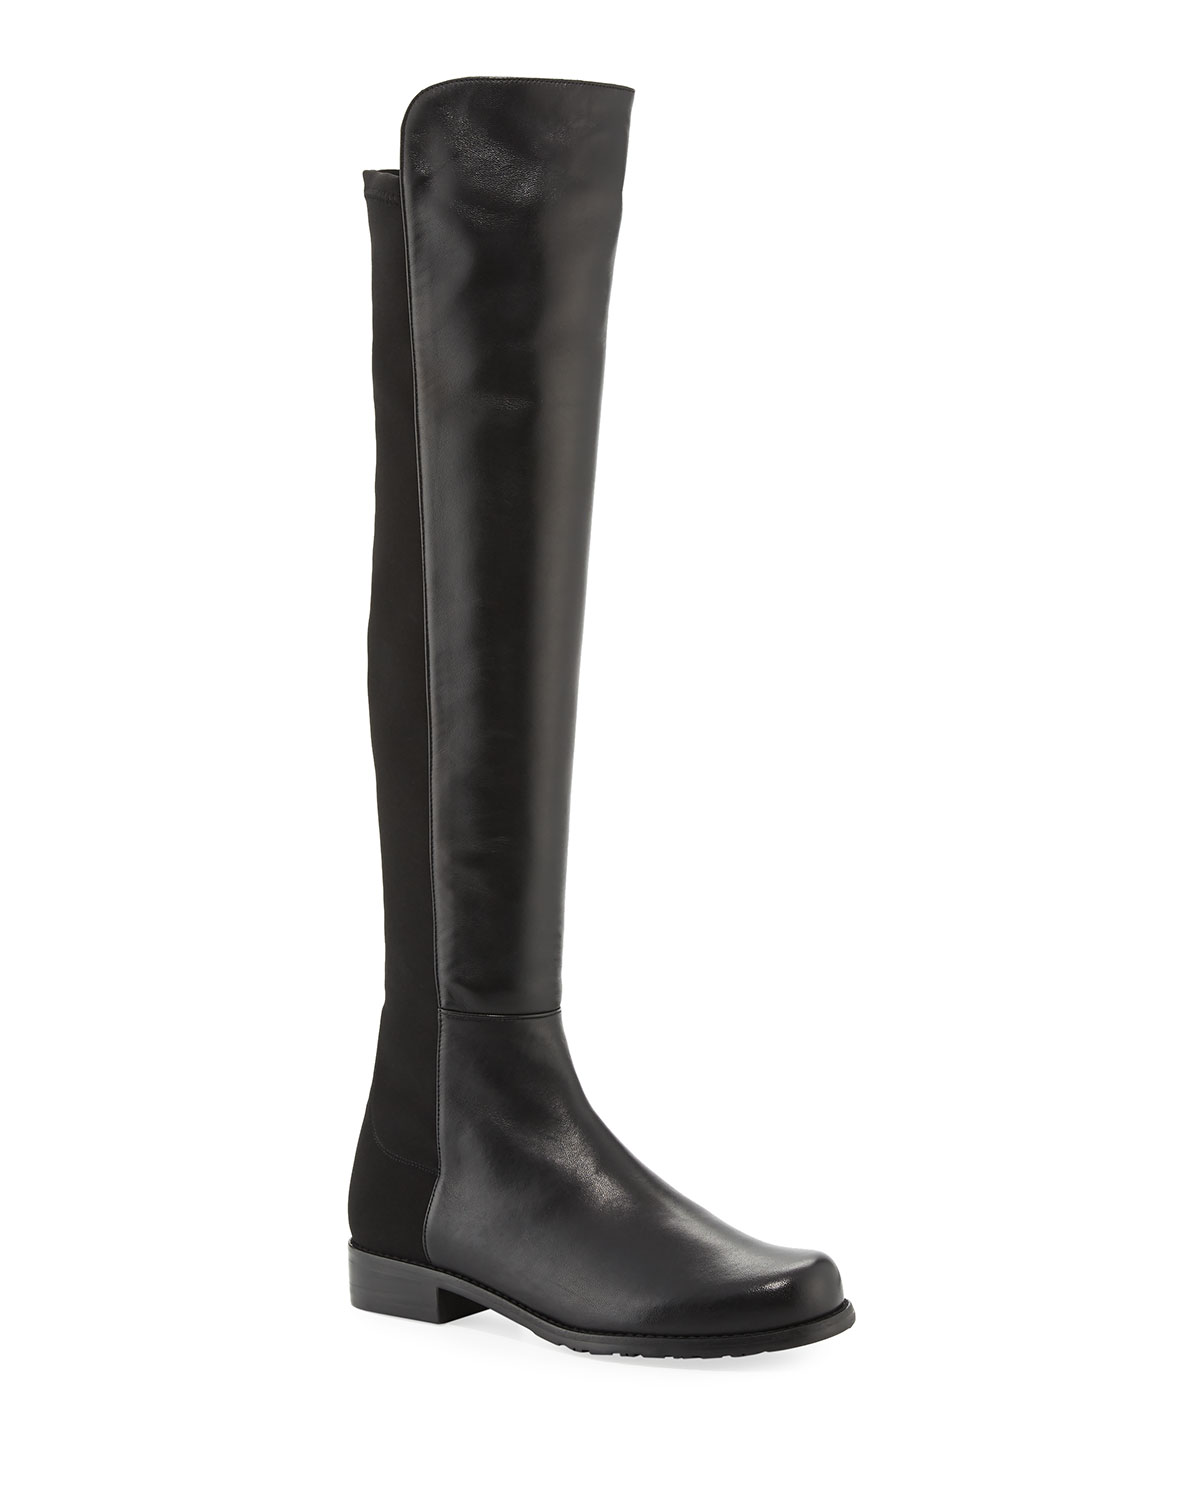 70cc9863269 Stuart Weitzman 50 50 Leather Over-the-Knee Boot